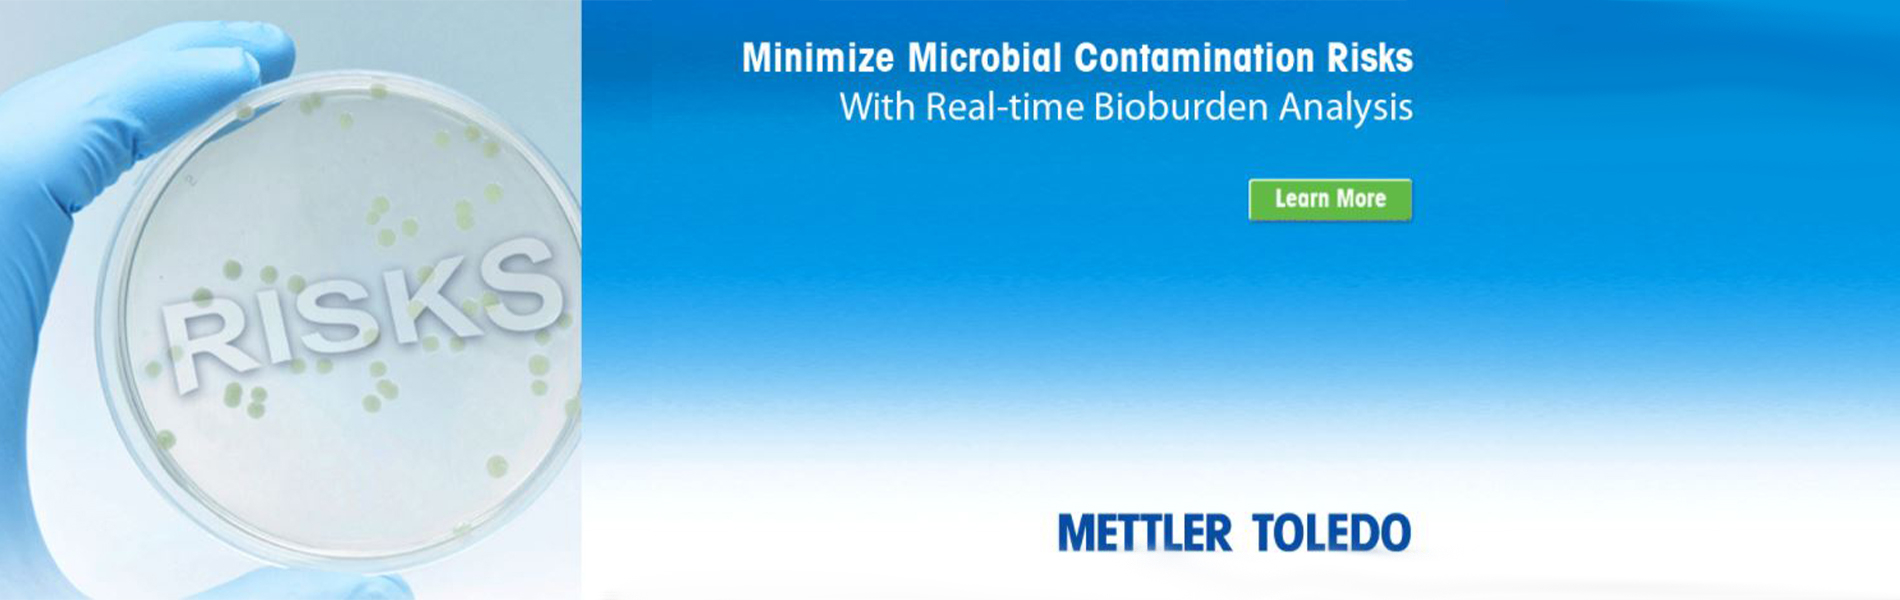 Microbial Contamination Risks & Preventing Them with Real-Time Analysis